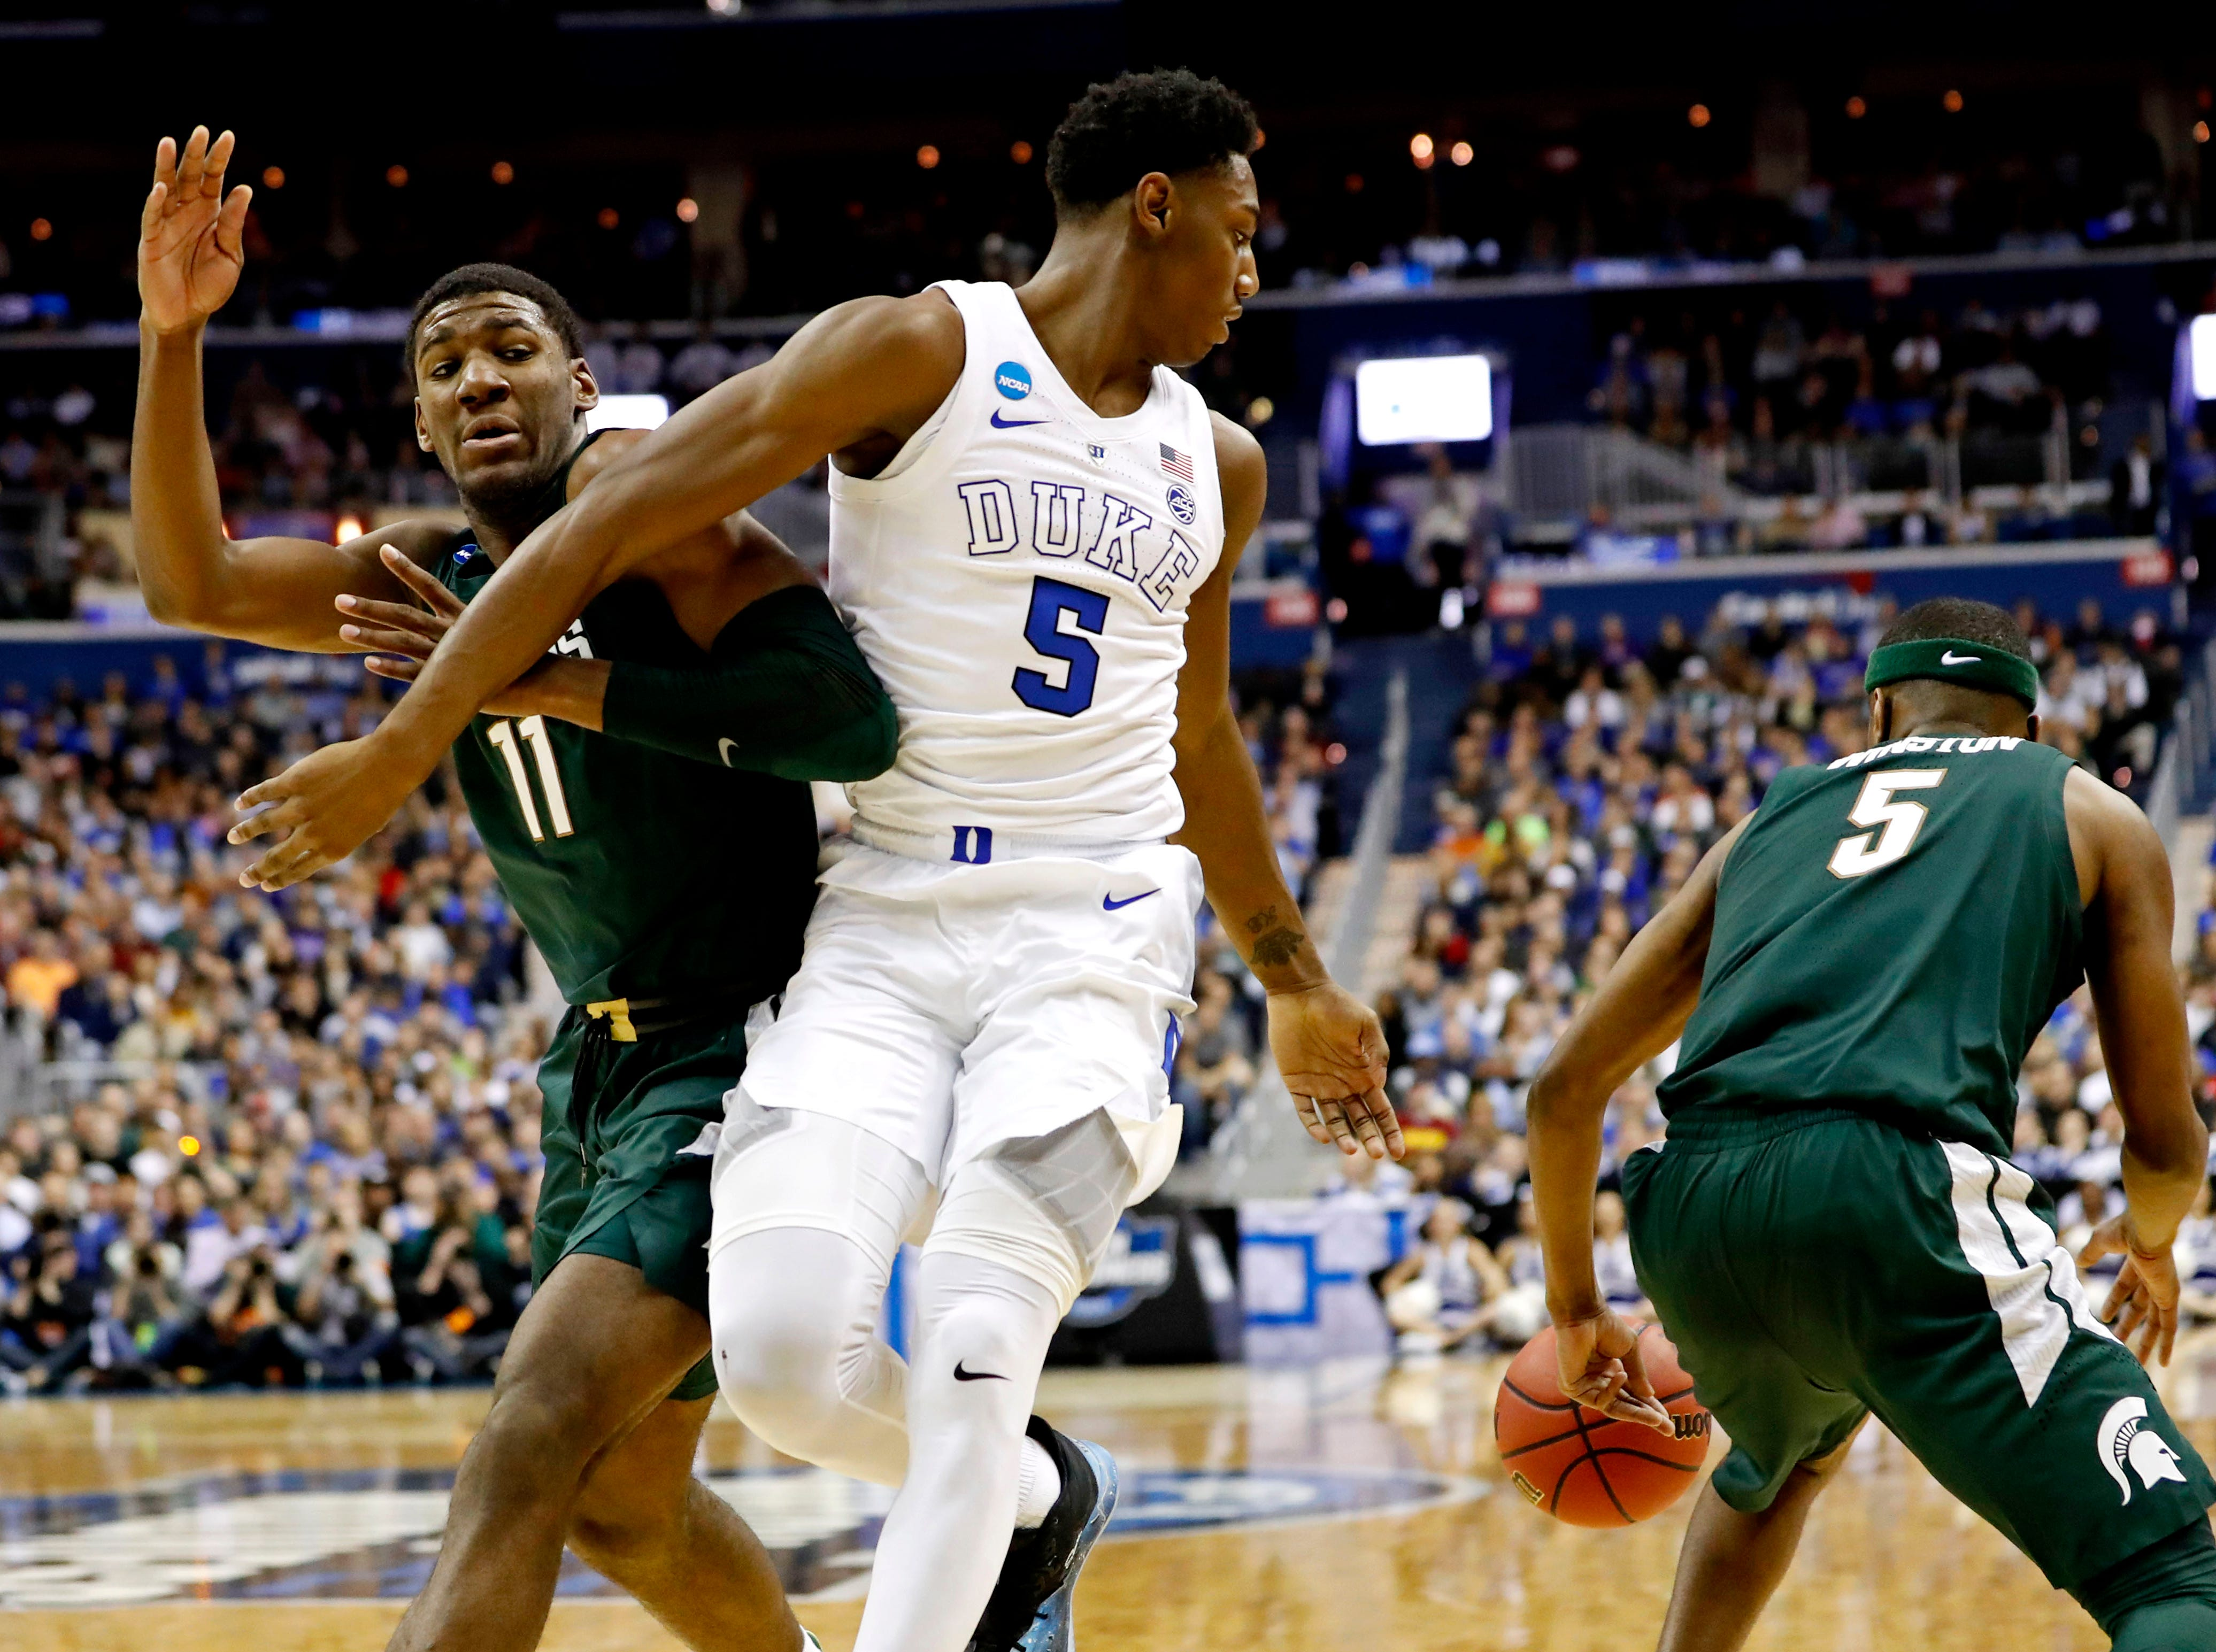 Mar 31, 2019; Washington, DC, USA; Michigan State Spartans guard Cassius Winston (5) and forward Aaron Henry (11) steals the ball from Duke Blue Devils forward RJ Barrett (5) during the first half in the championship game of the east regional of the 2019 NCAA Tournament at Capital One Arena. Mandatory Credit: Geoff Burke-USA TODAY Sports